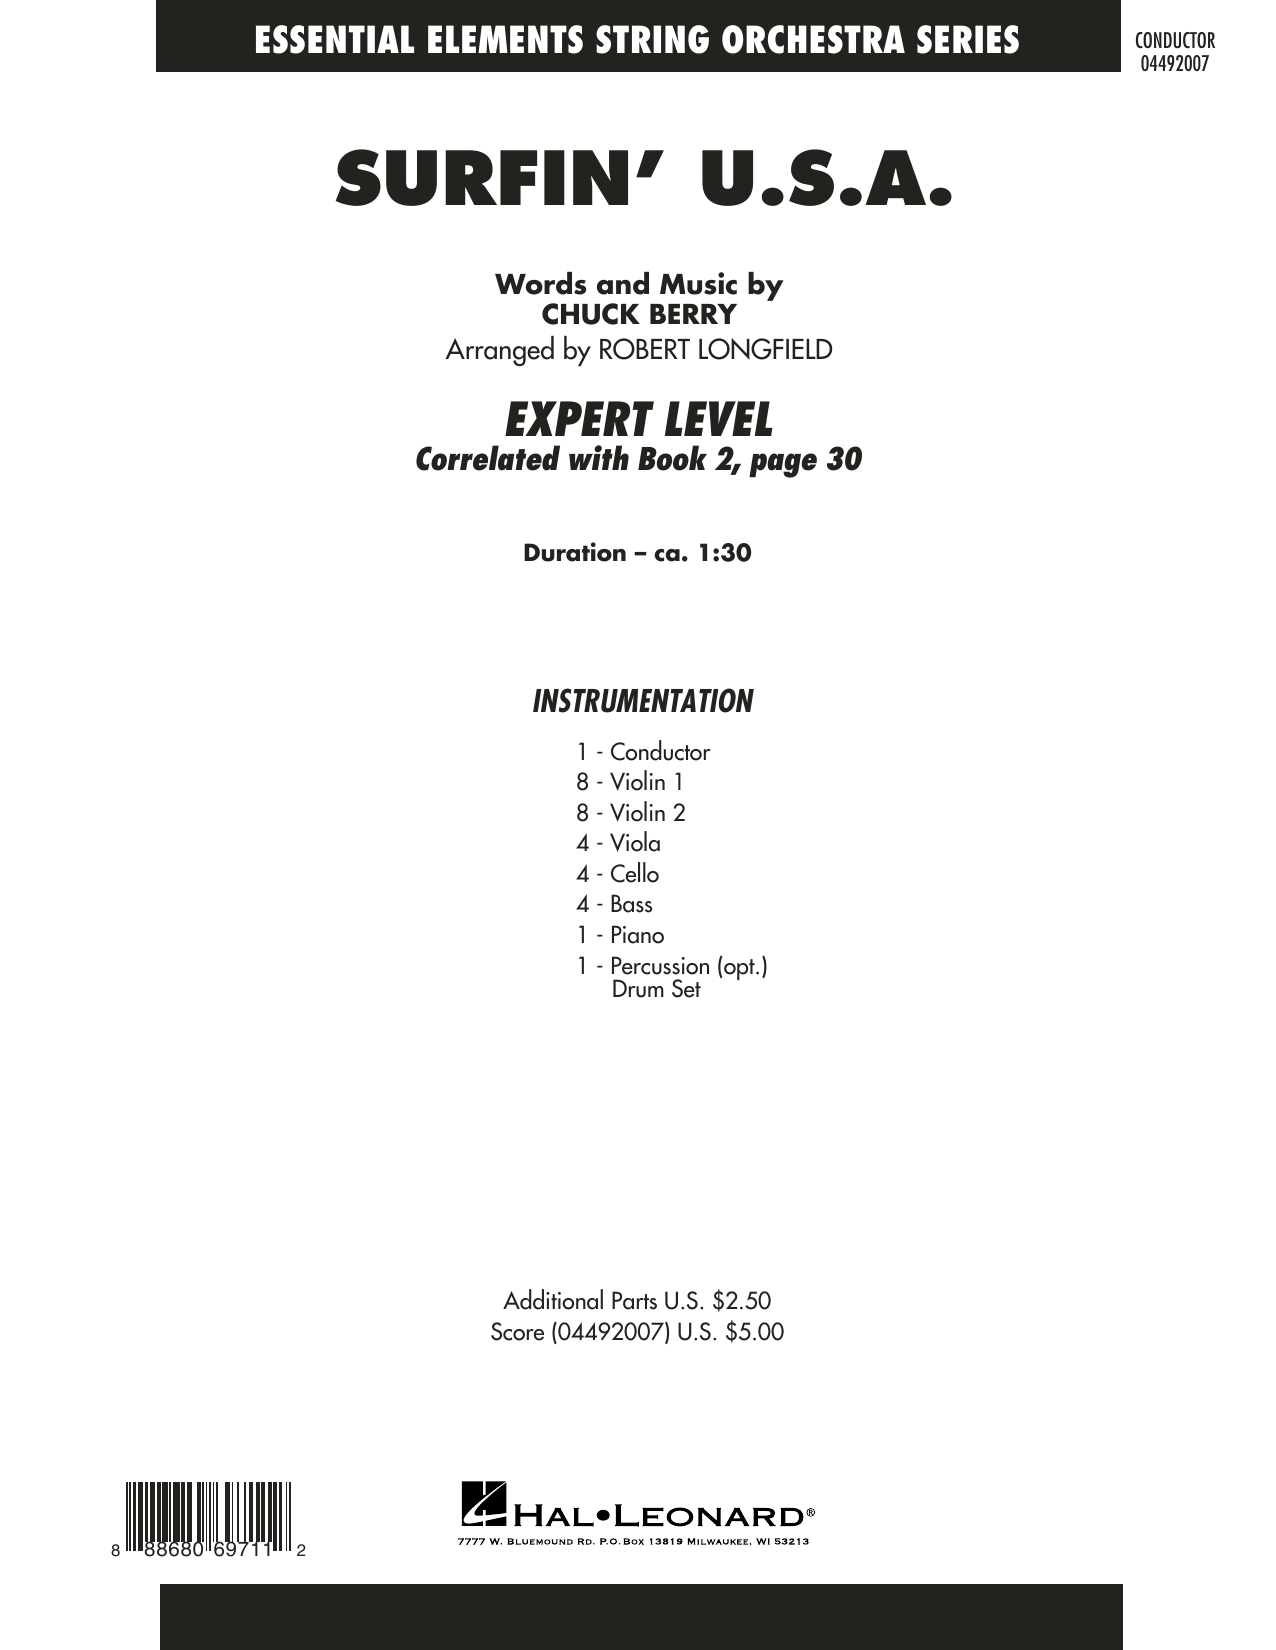 Robert Longfield Surfin' U.S.A. - Conductor Score (Full Score) sheet music notes and chords. Download Printable PDF.